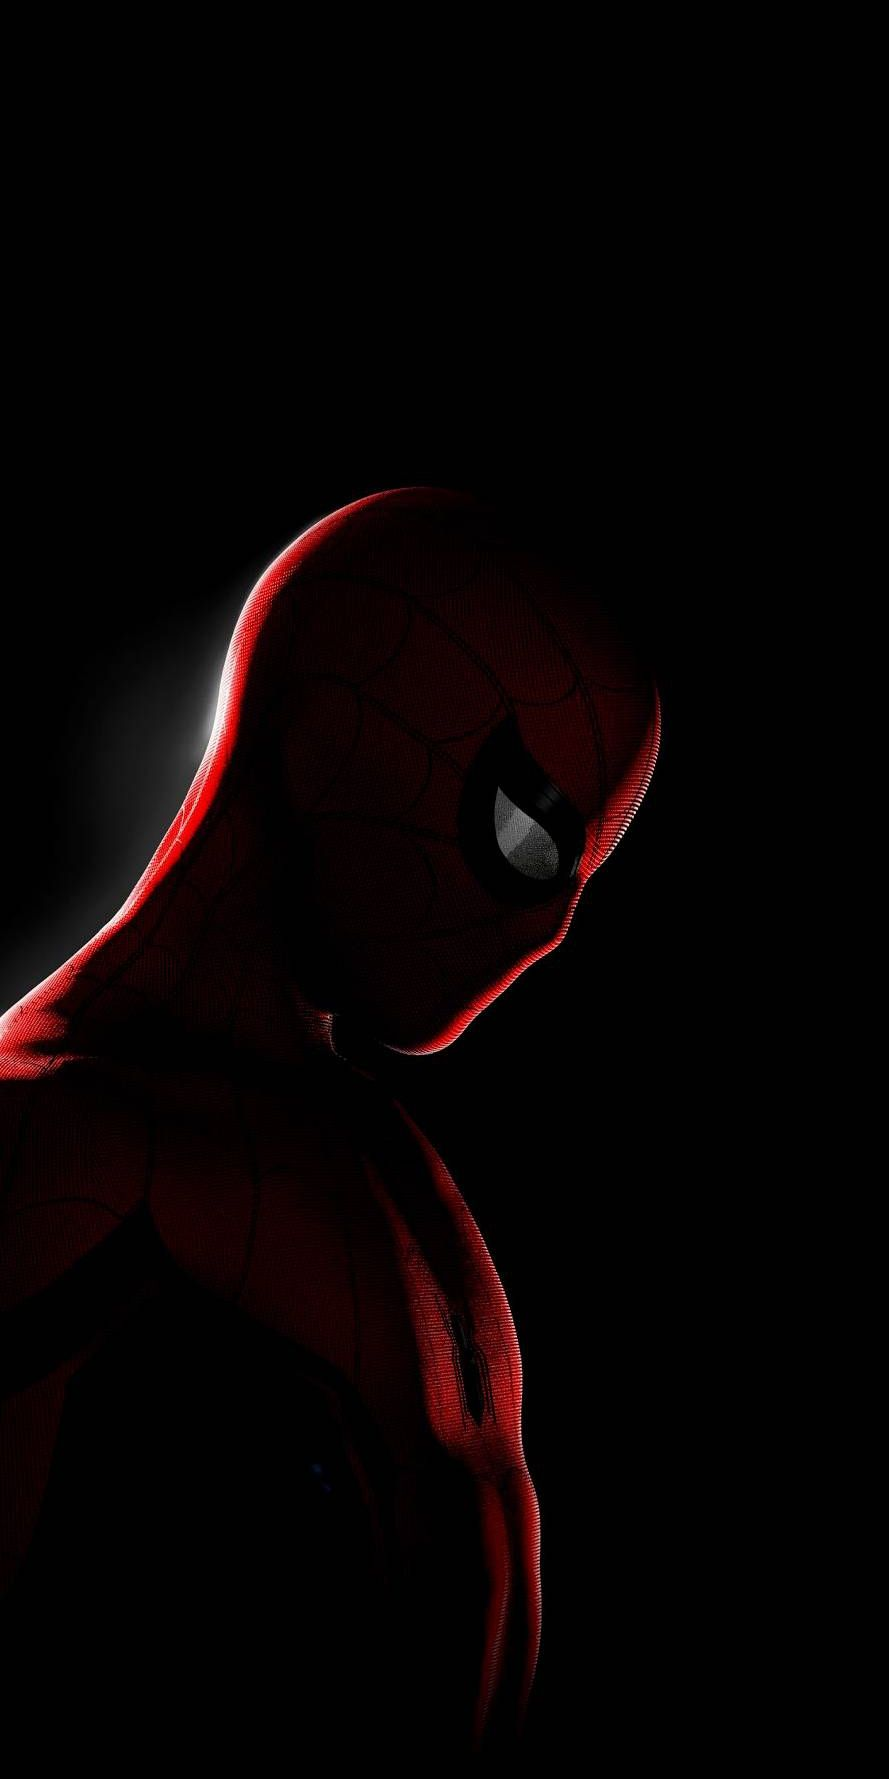 Far From Home Spiderman Iphone Wallpaper Marvel Iphone Wallpaper